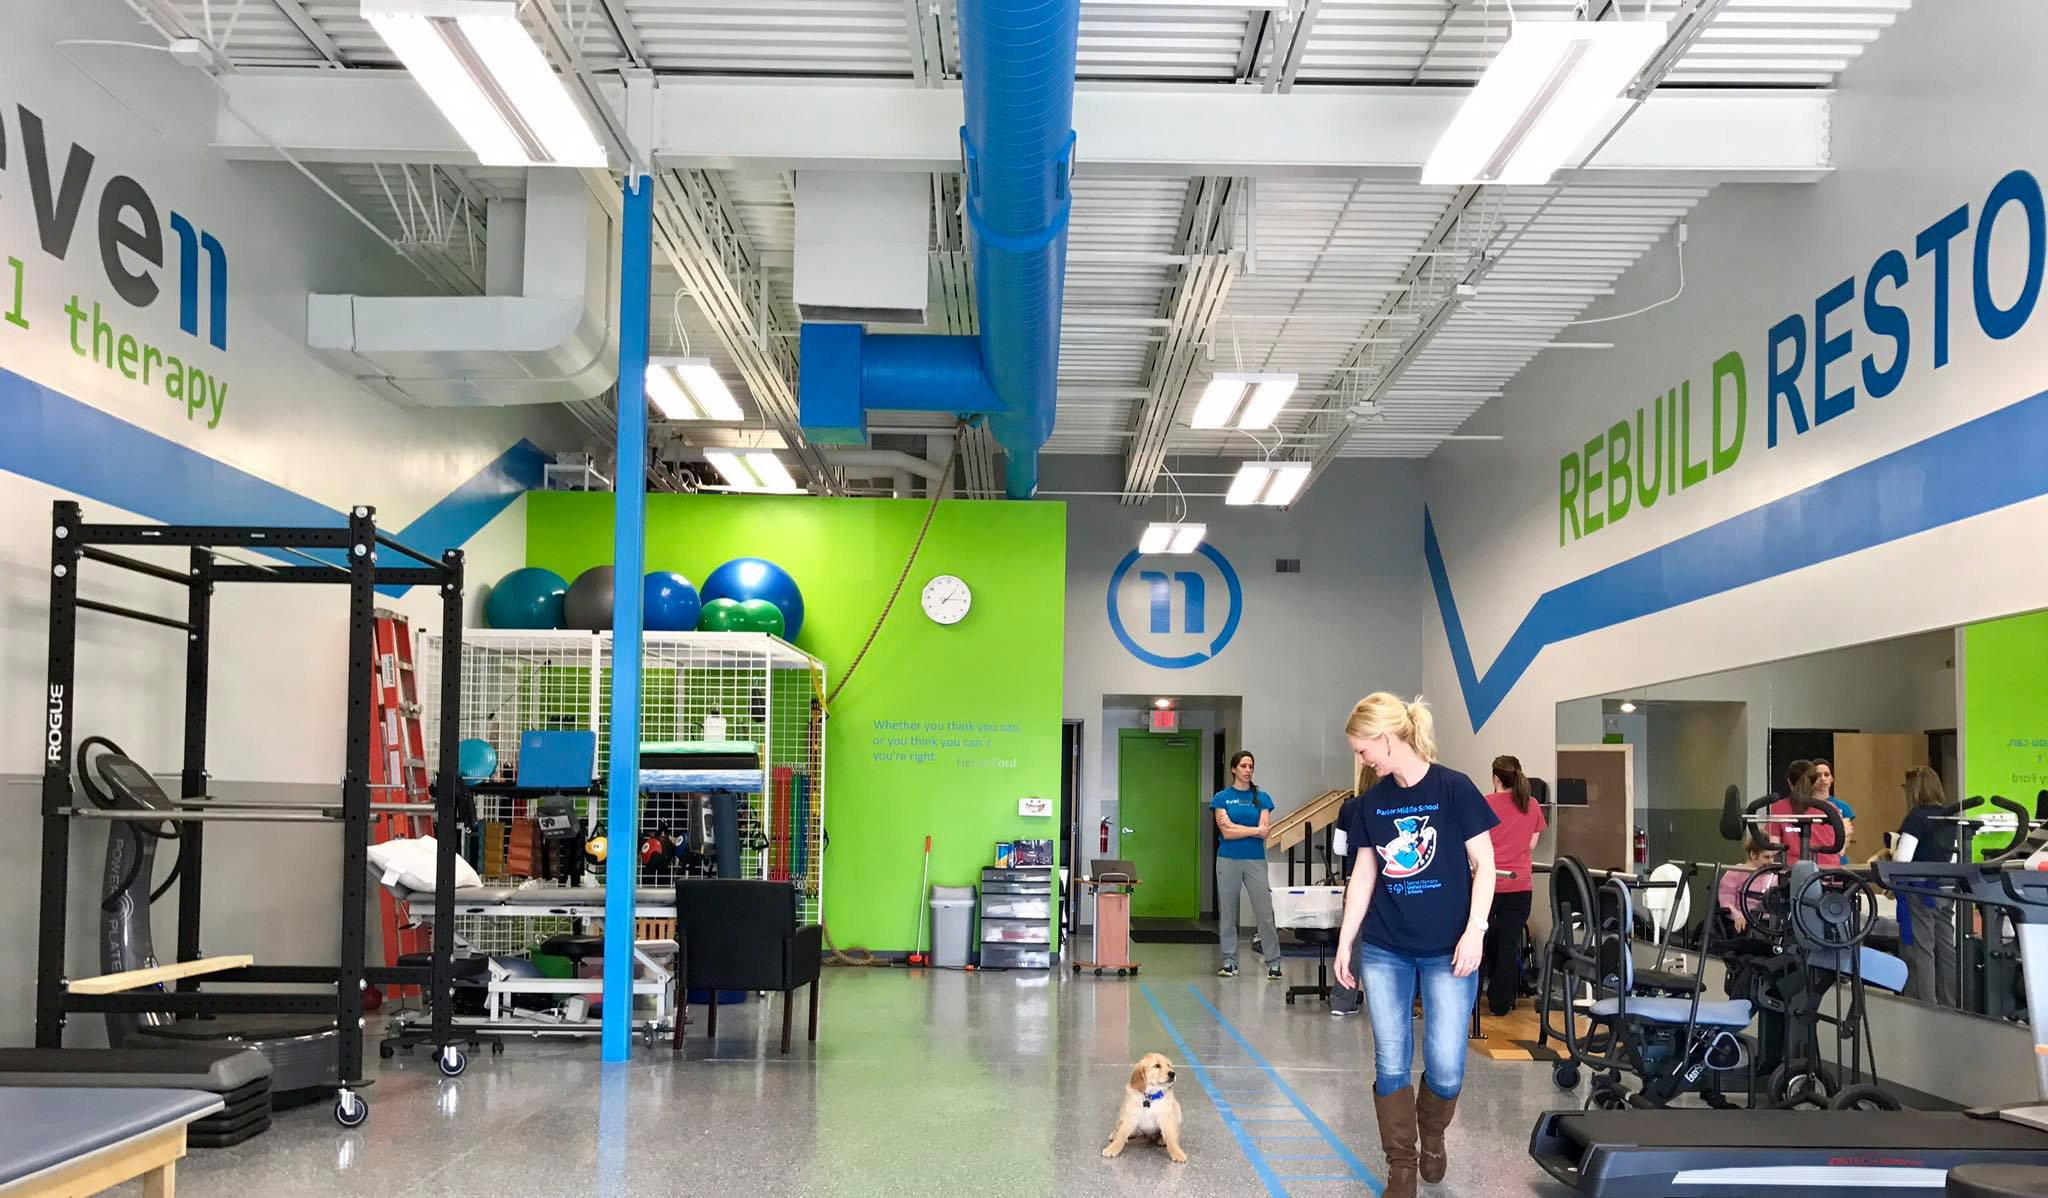 Level Eleven Howell, MI - Located on M-59 (W.Highland), Level Eleven Howell provides easy access to world-class therapy for patients from Lansing to Ann Arbor and everywhere in between.Stop in and ask for our Senior Physical Therapist, Dr. Nick Monday, DPT.(517) 546-9000